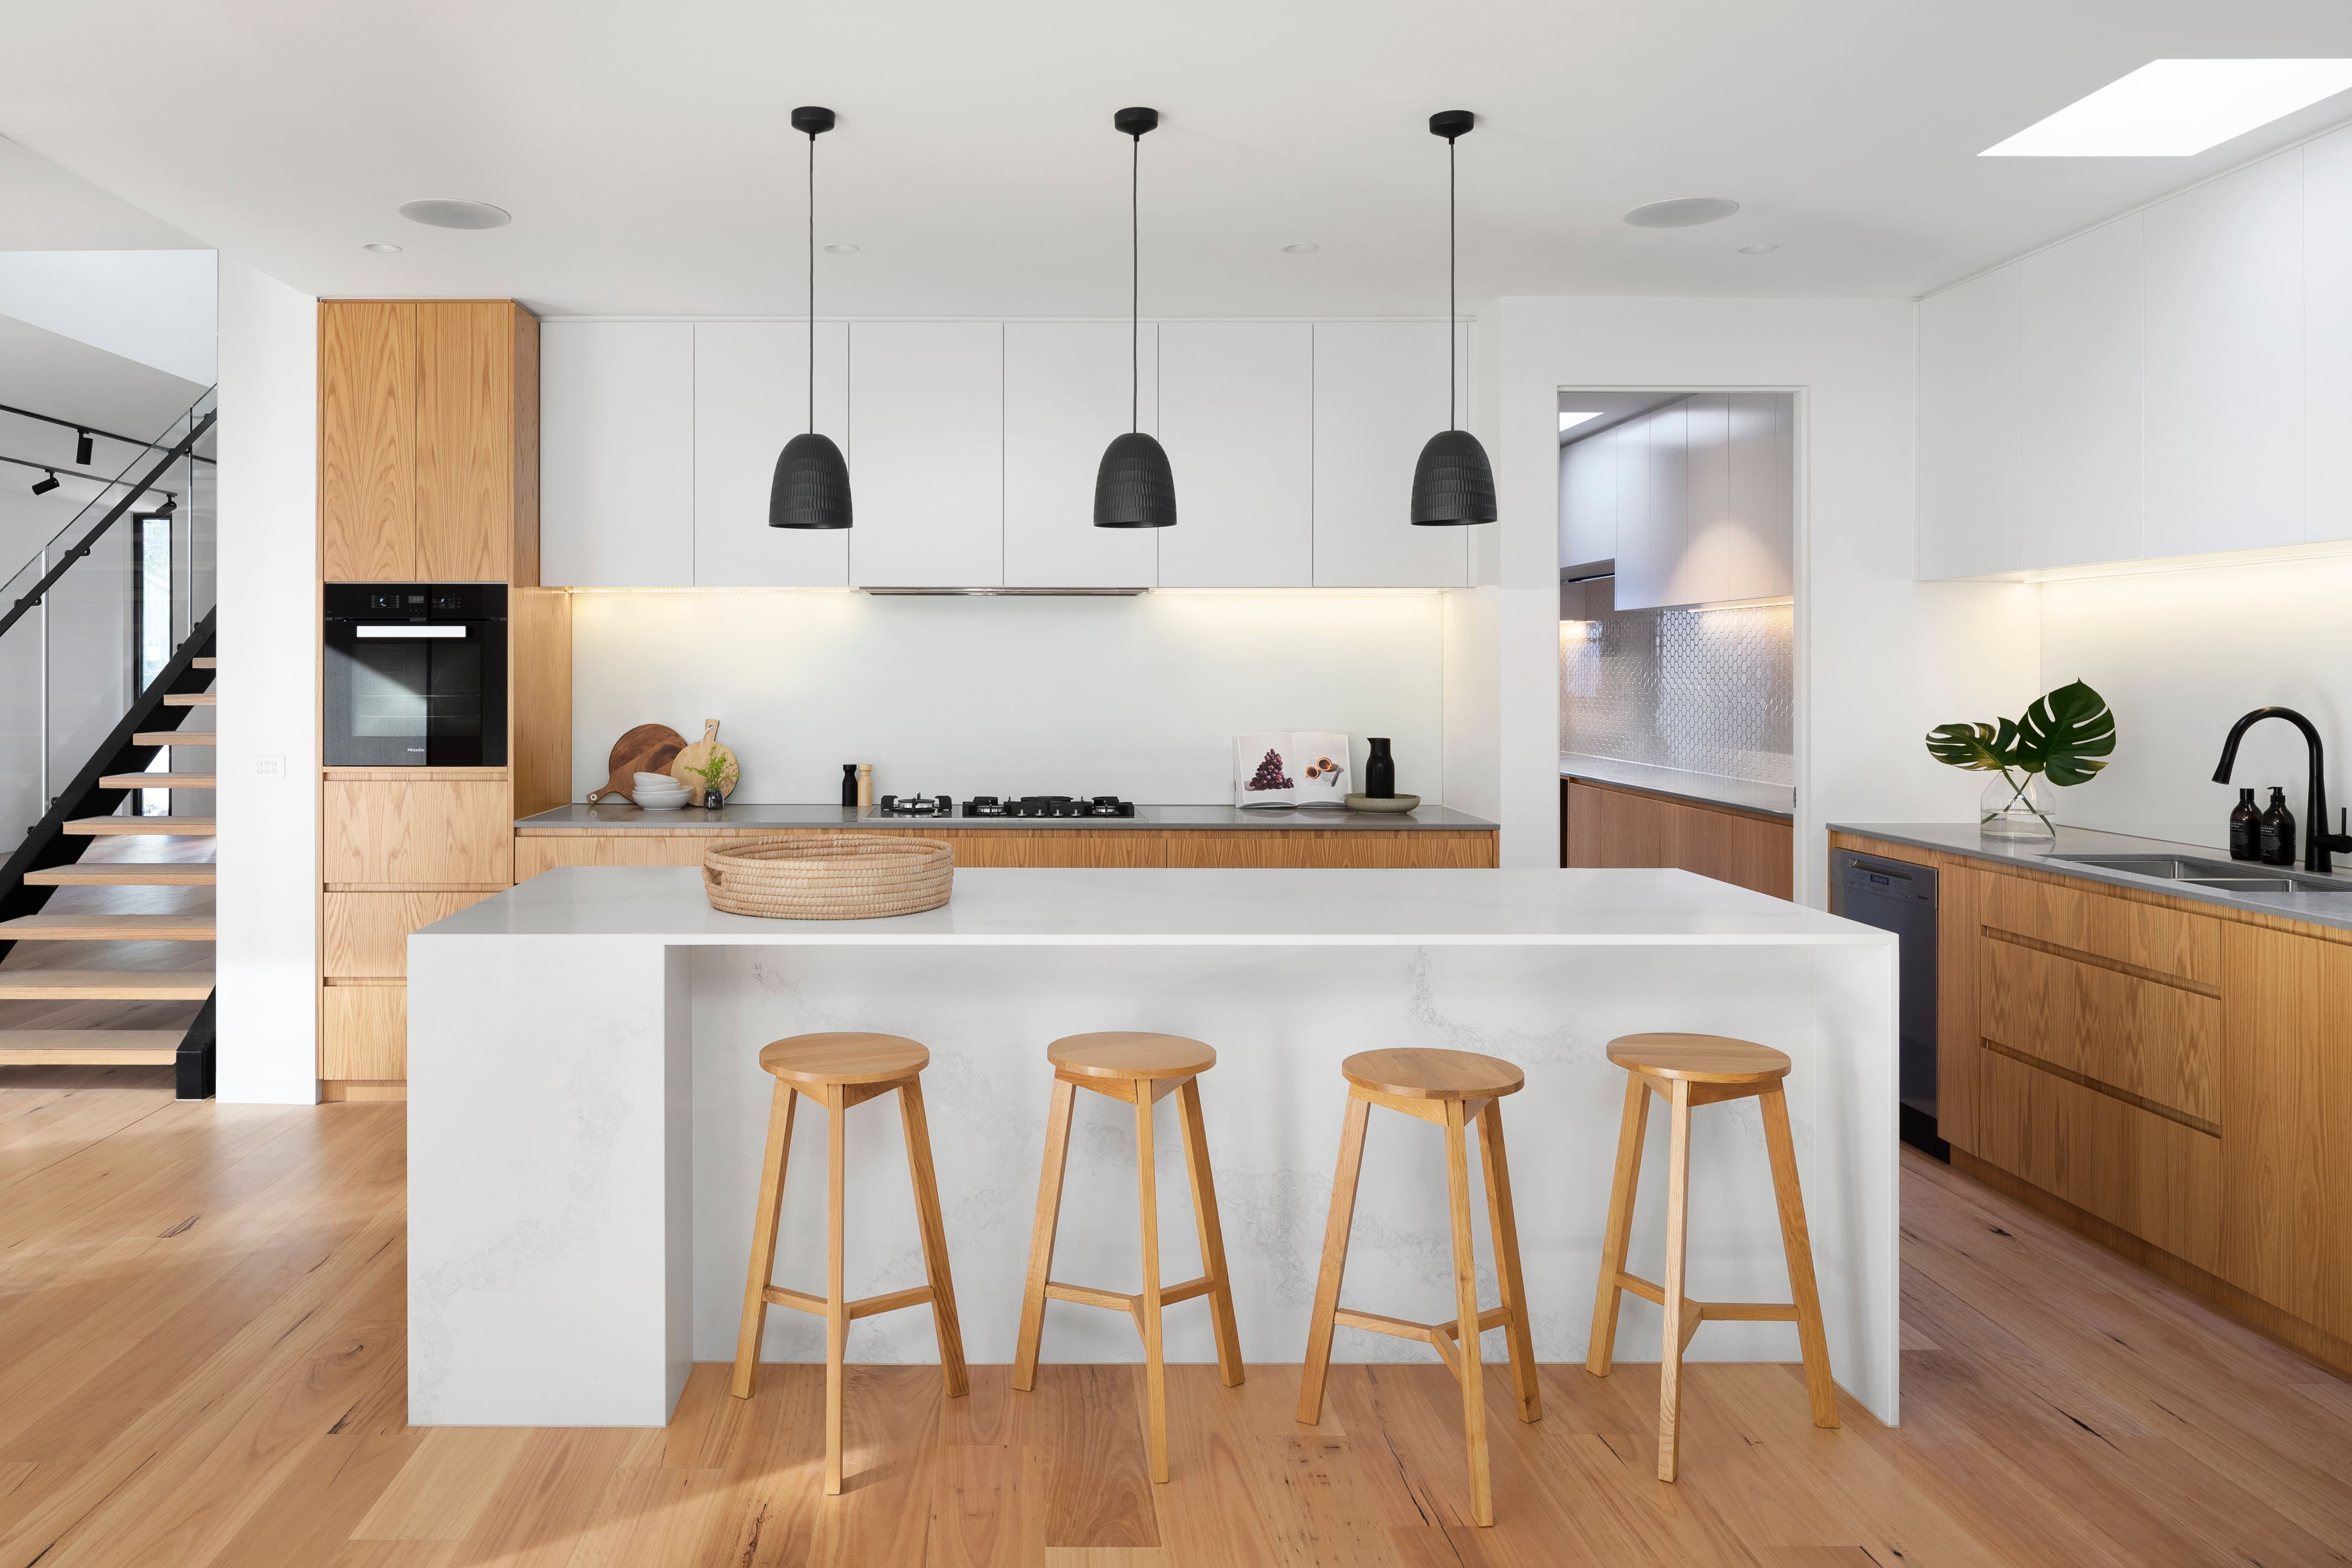 Kitchen design House and Lot in Cavite